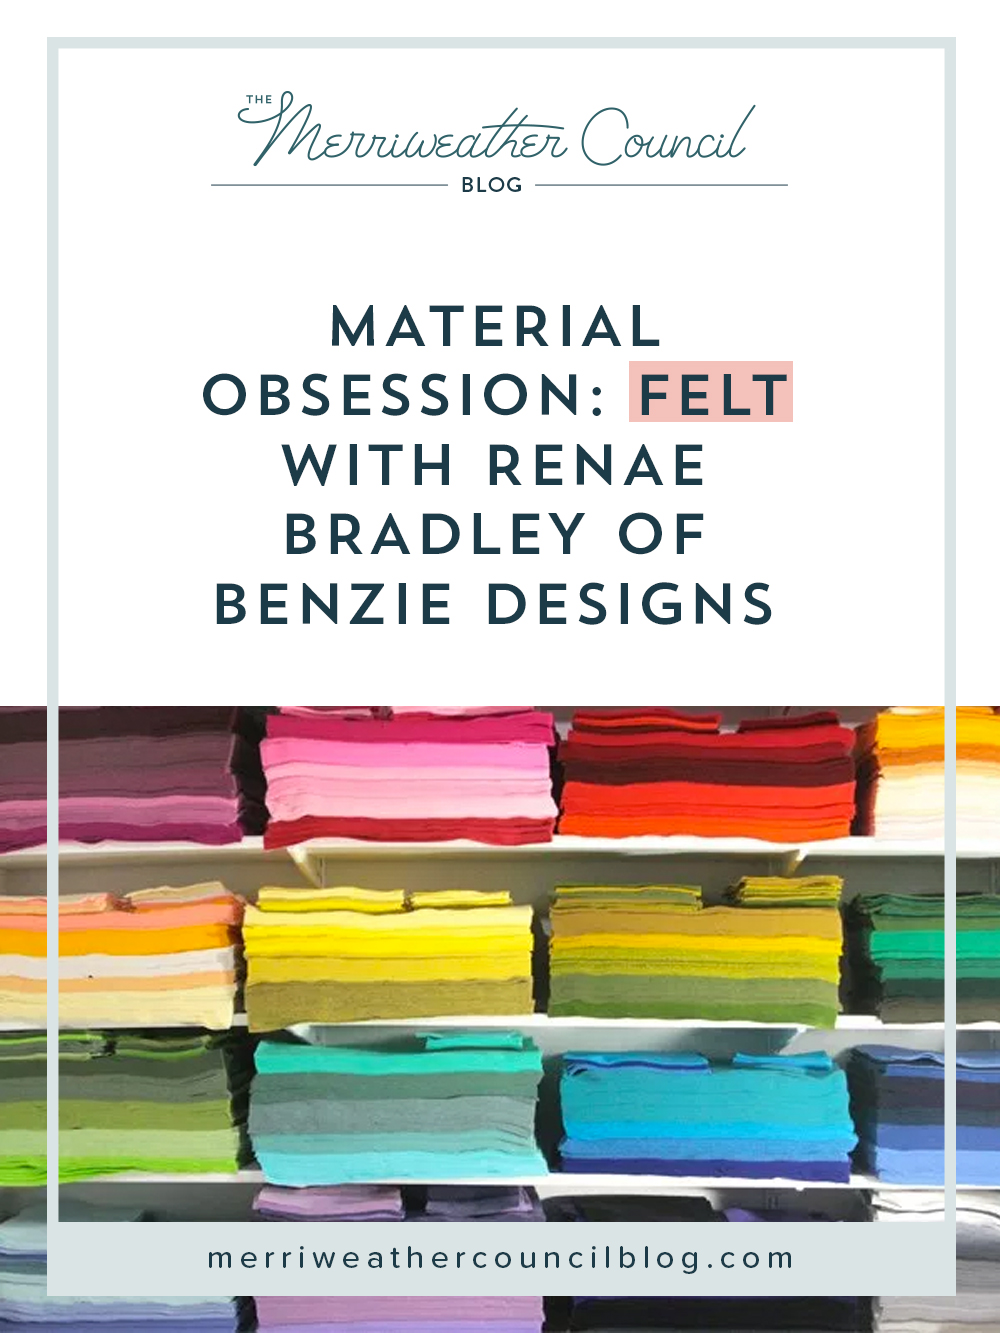 Material Obsession: Felt | The Merriweather Council Blog